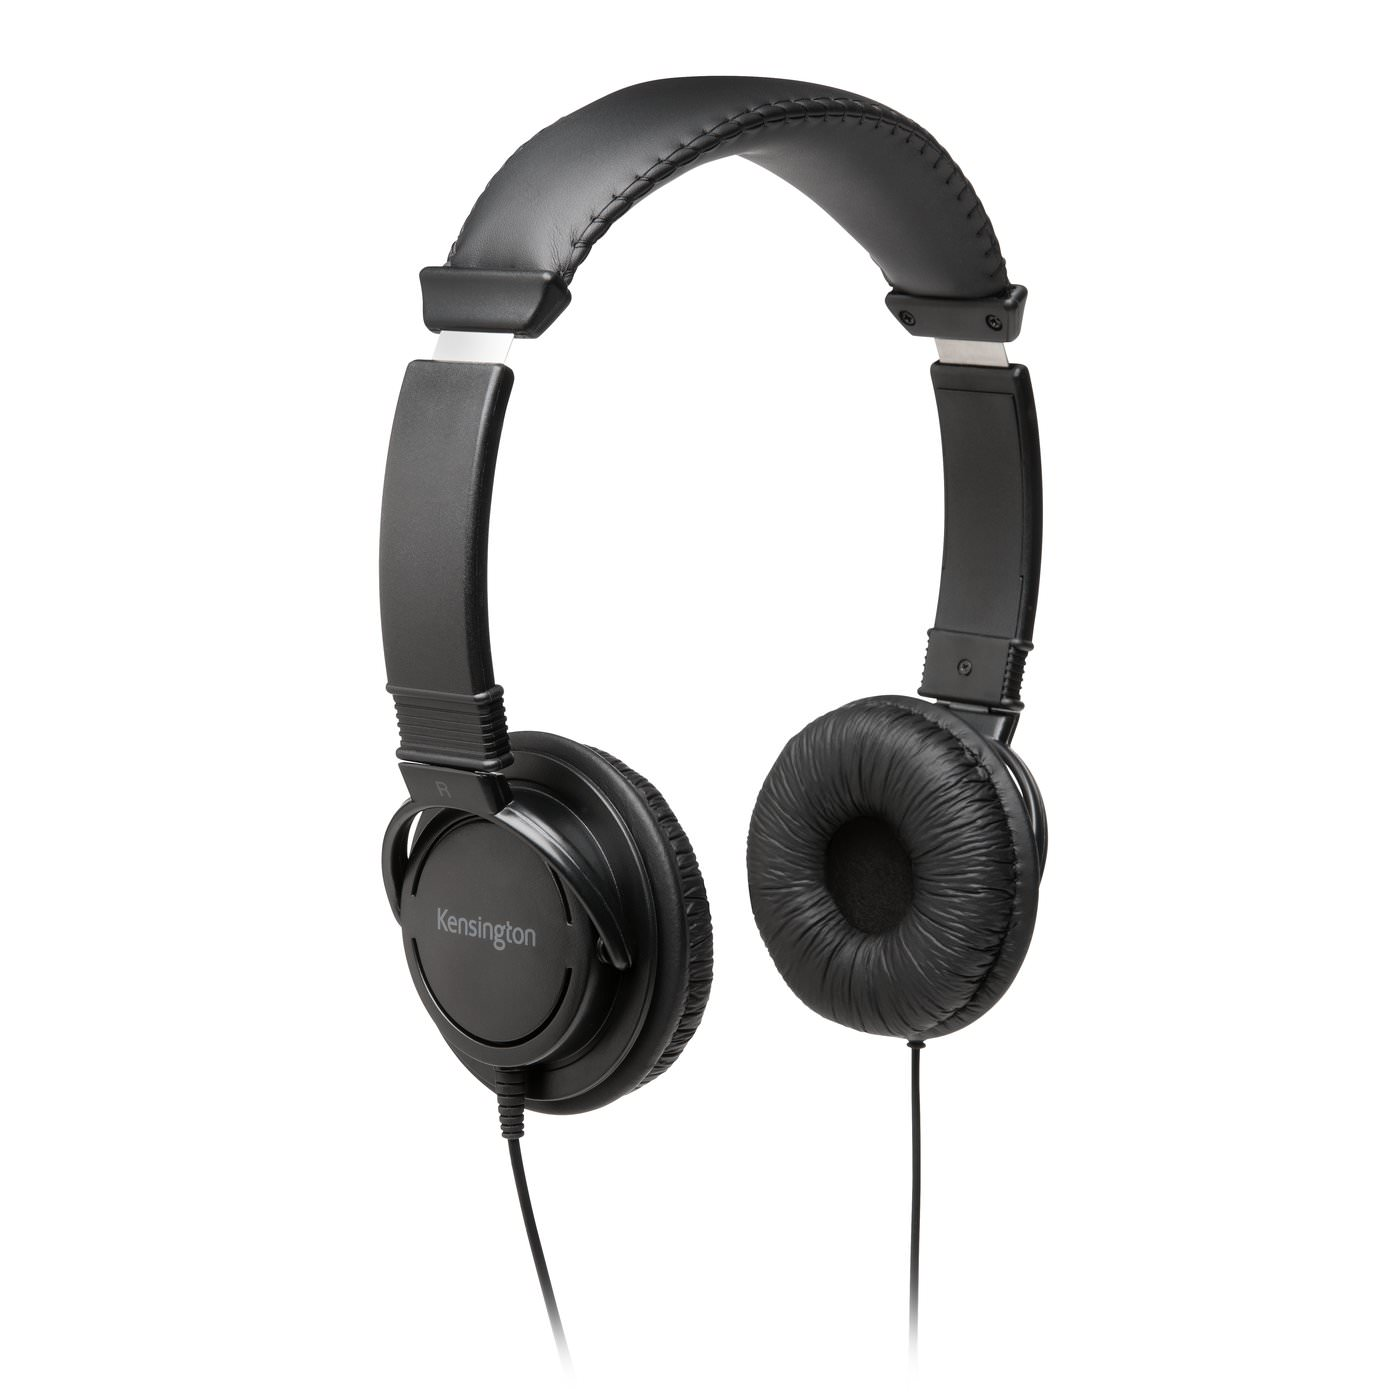 Kensington Hi-Fi Headphones by Kensington